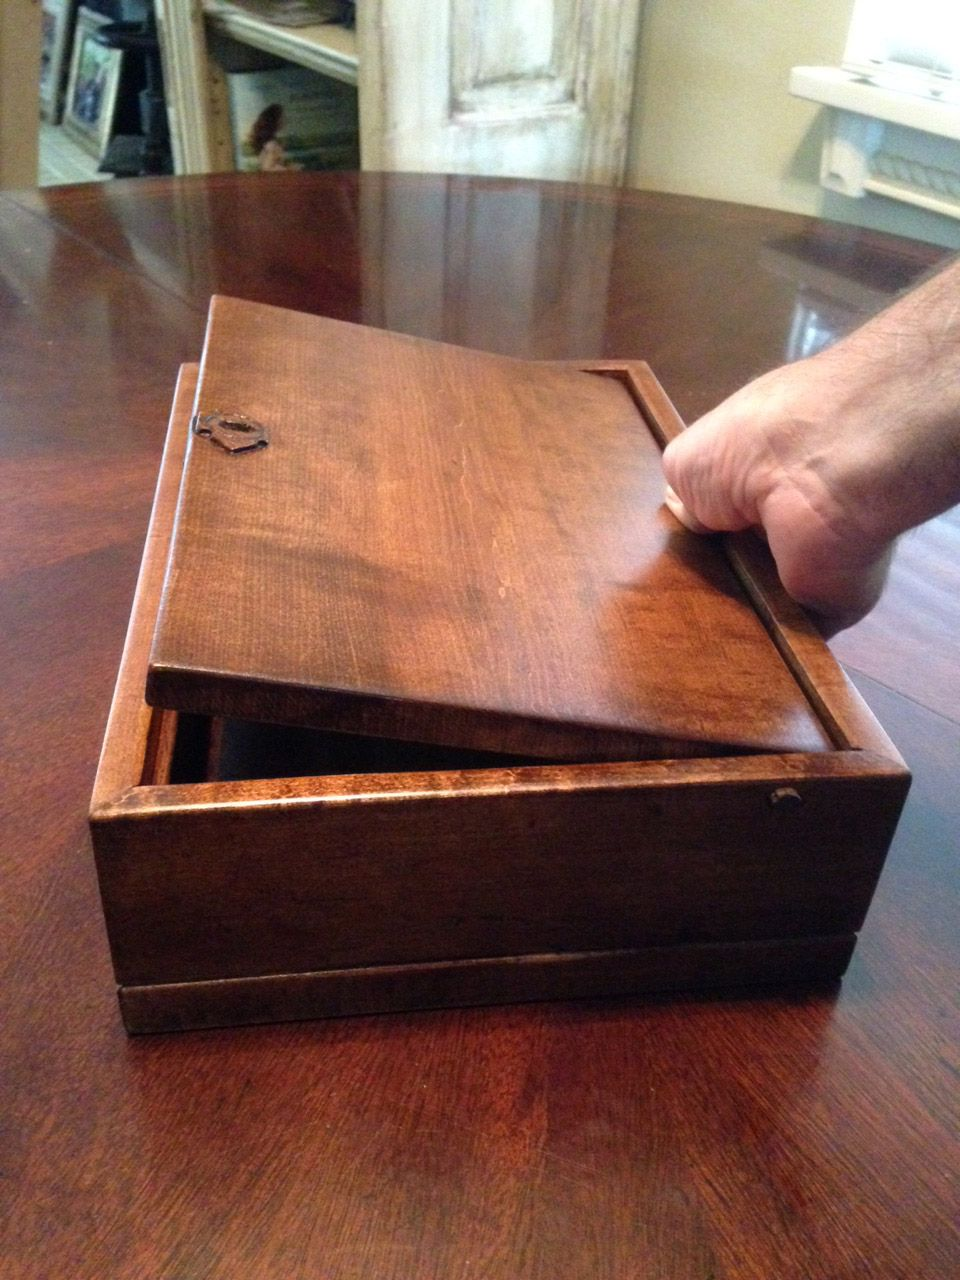 Wooden Box Lid Opening Woodshop Small Wooden Boxes